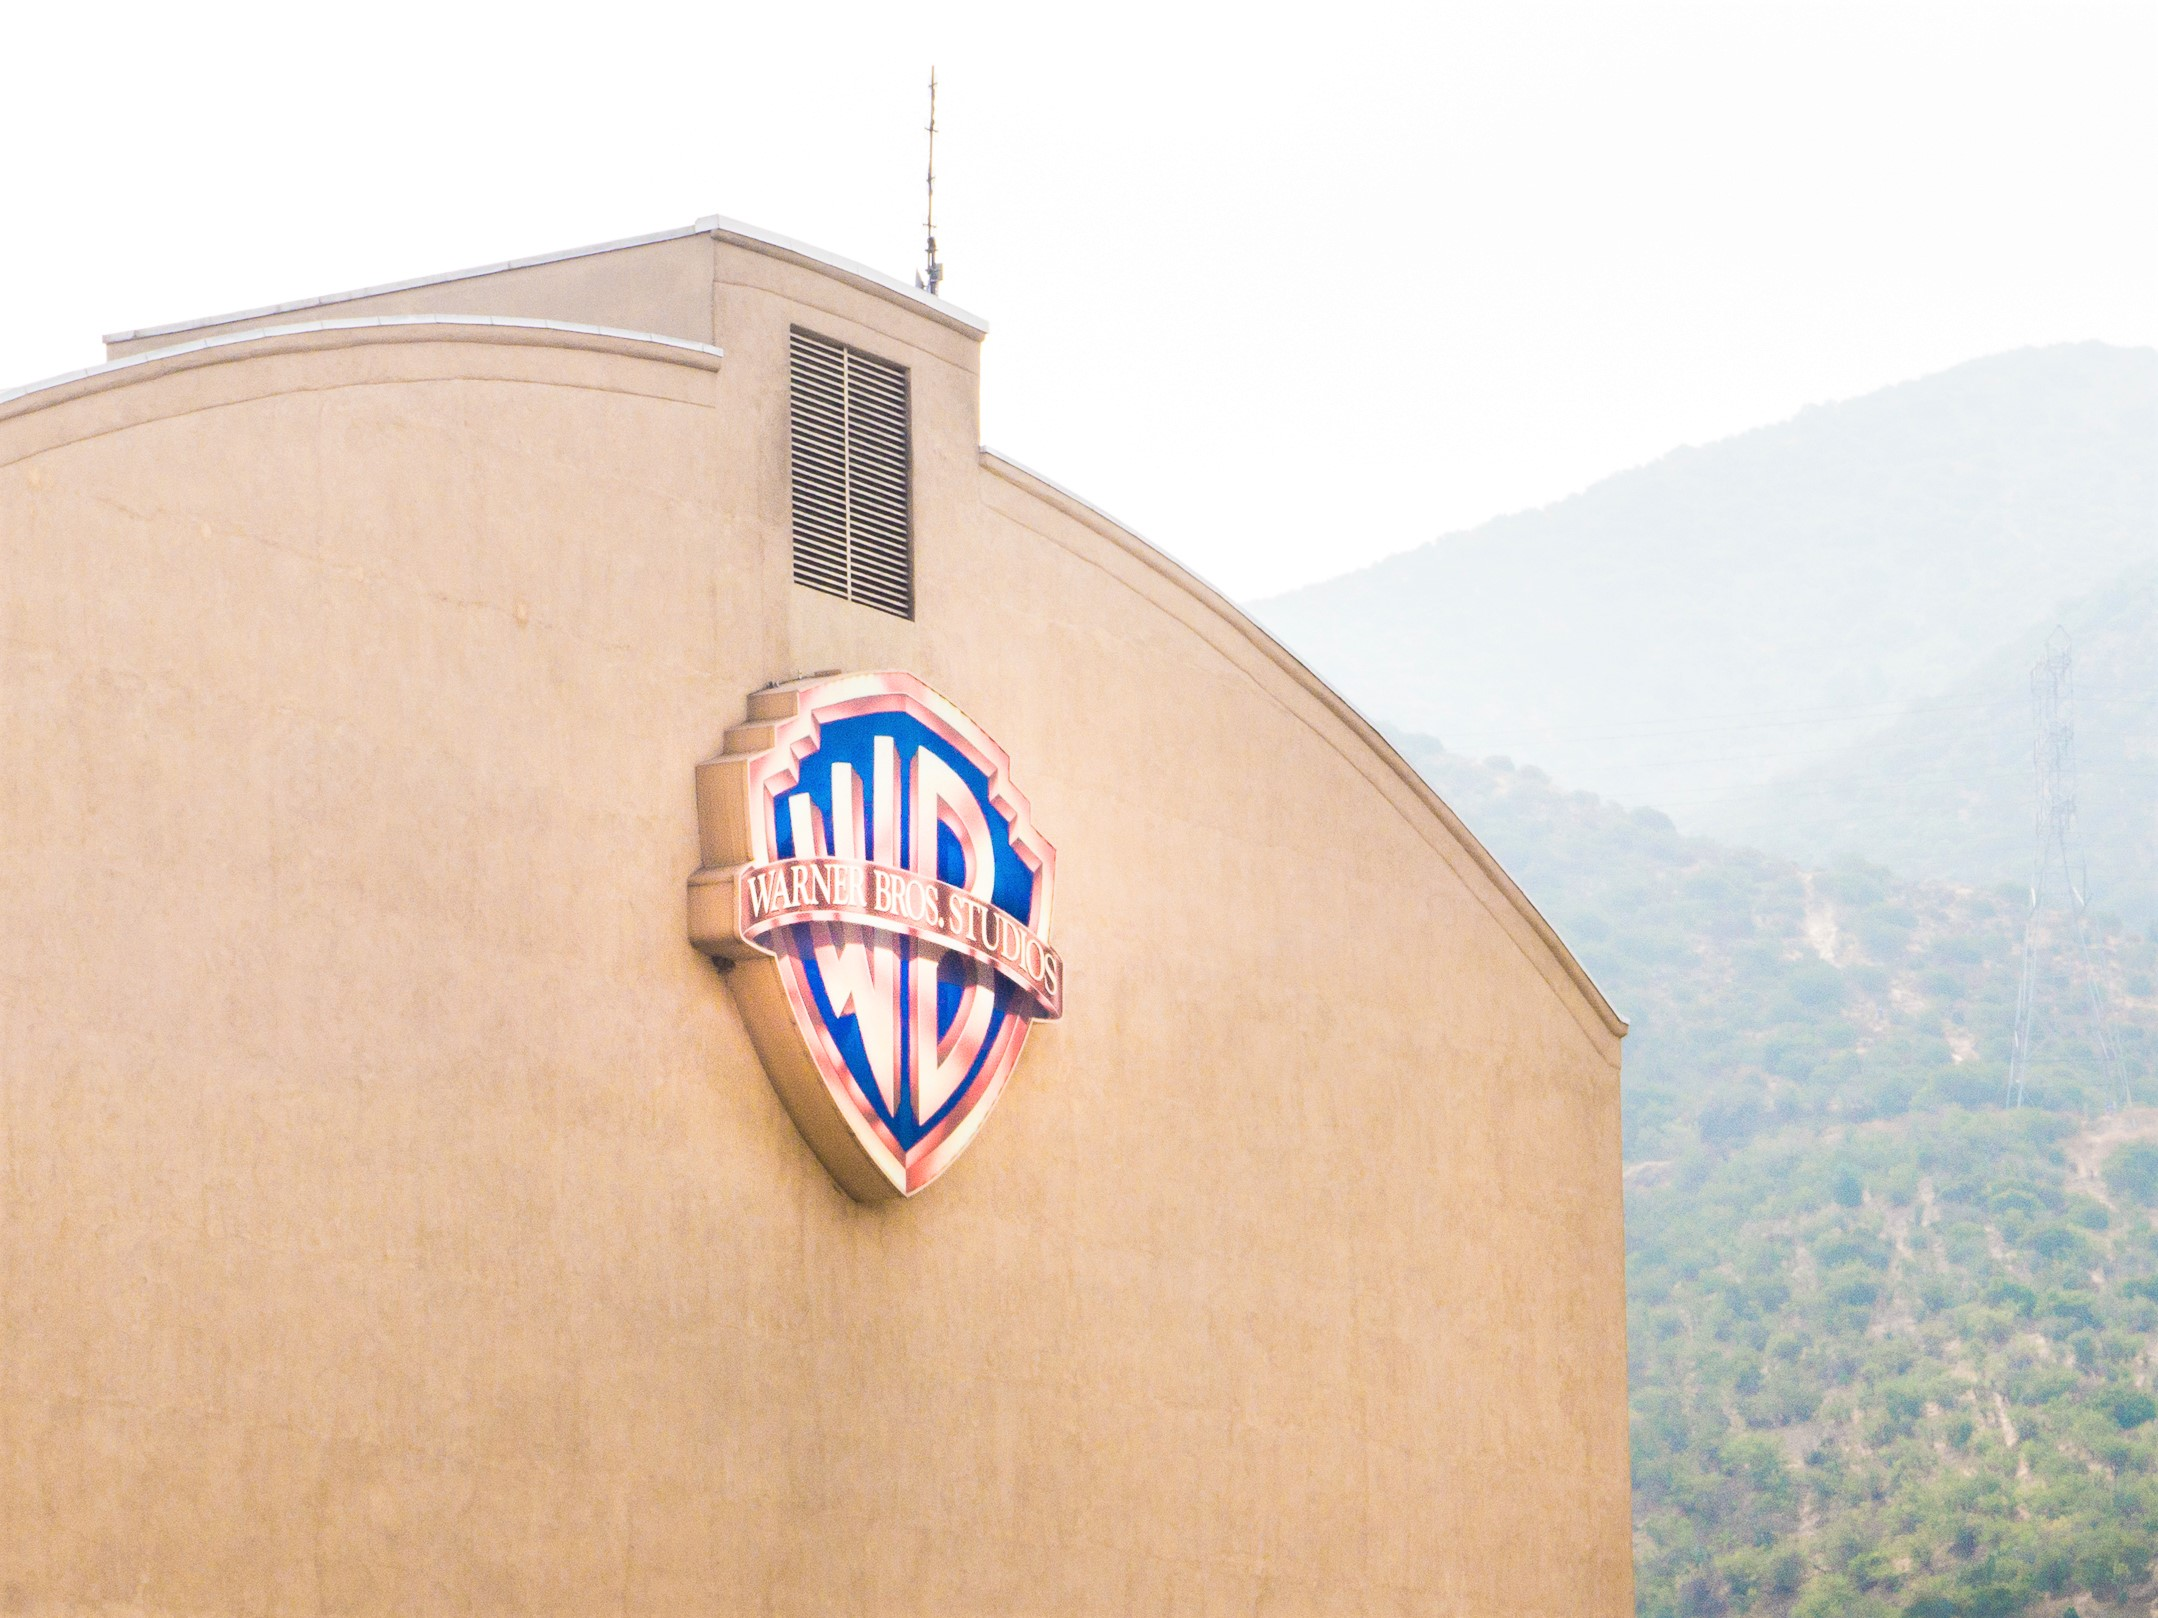 Warner Bros. World Opens As the World's Largest Indoor Theme Park